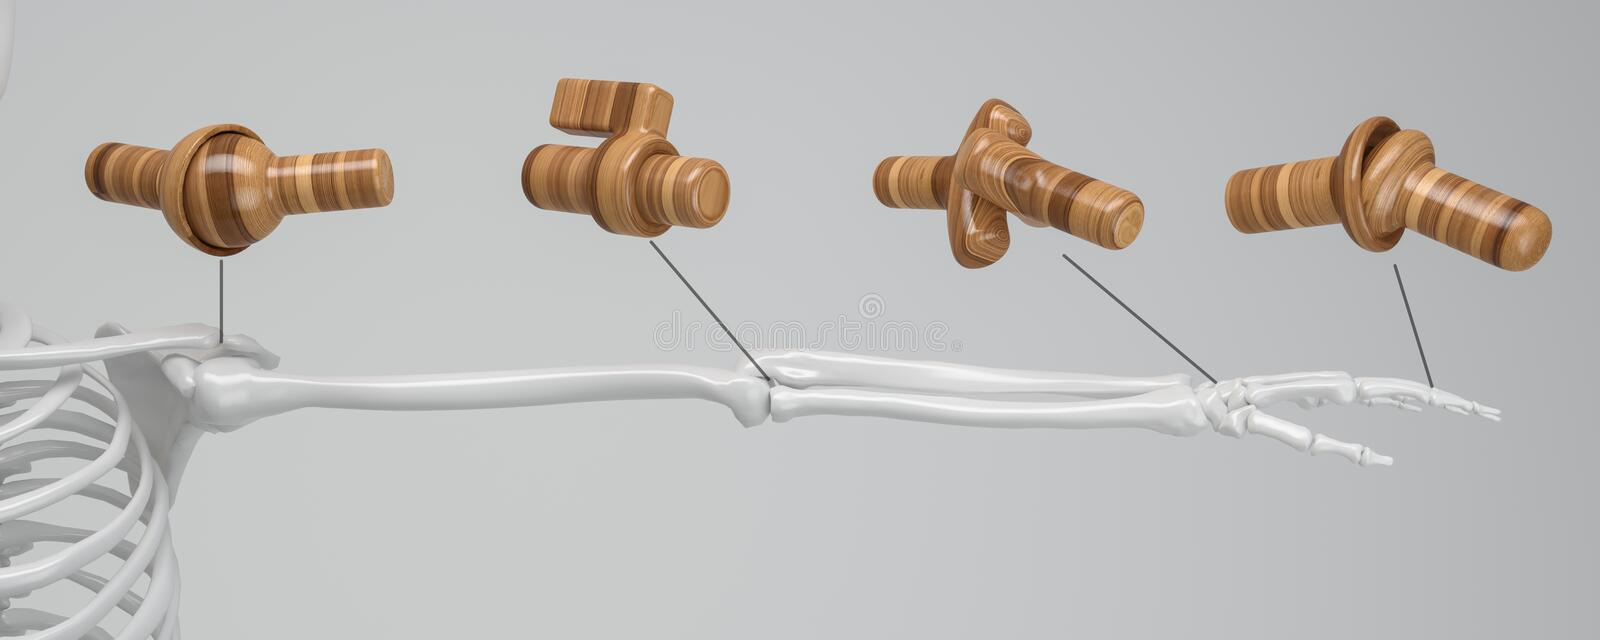 Joint types on the human skeleton - 3D Rendering royalty free illustration